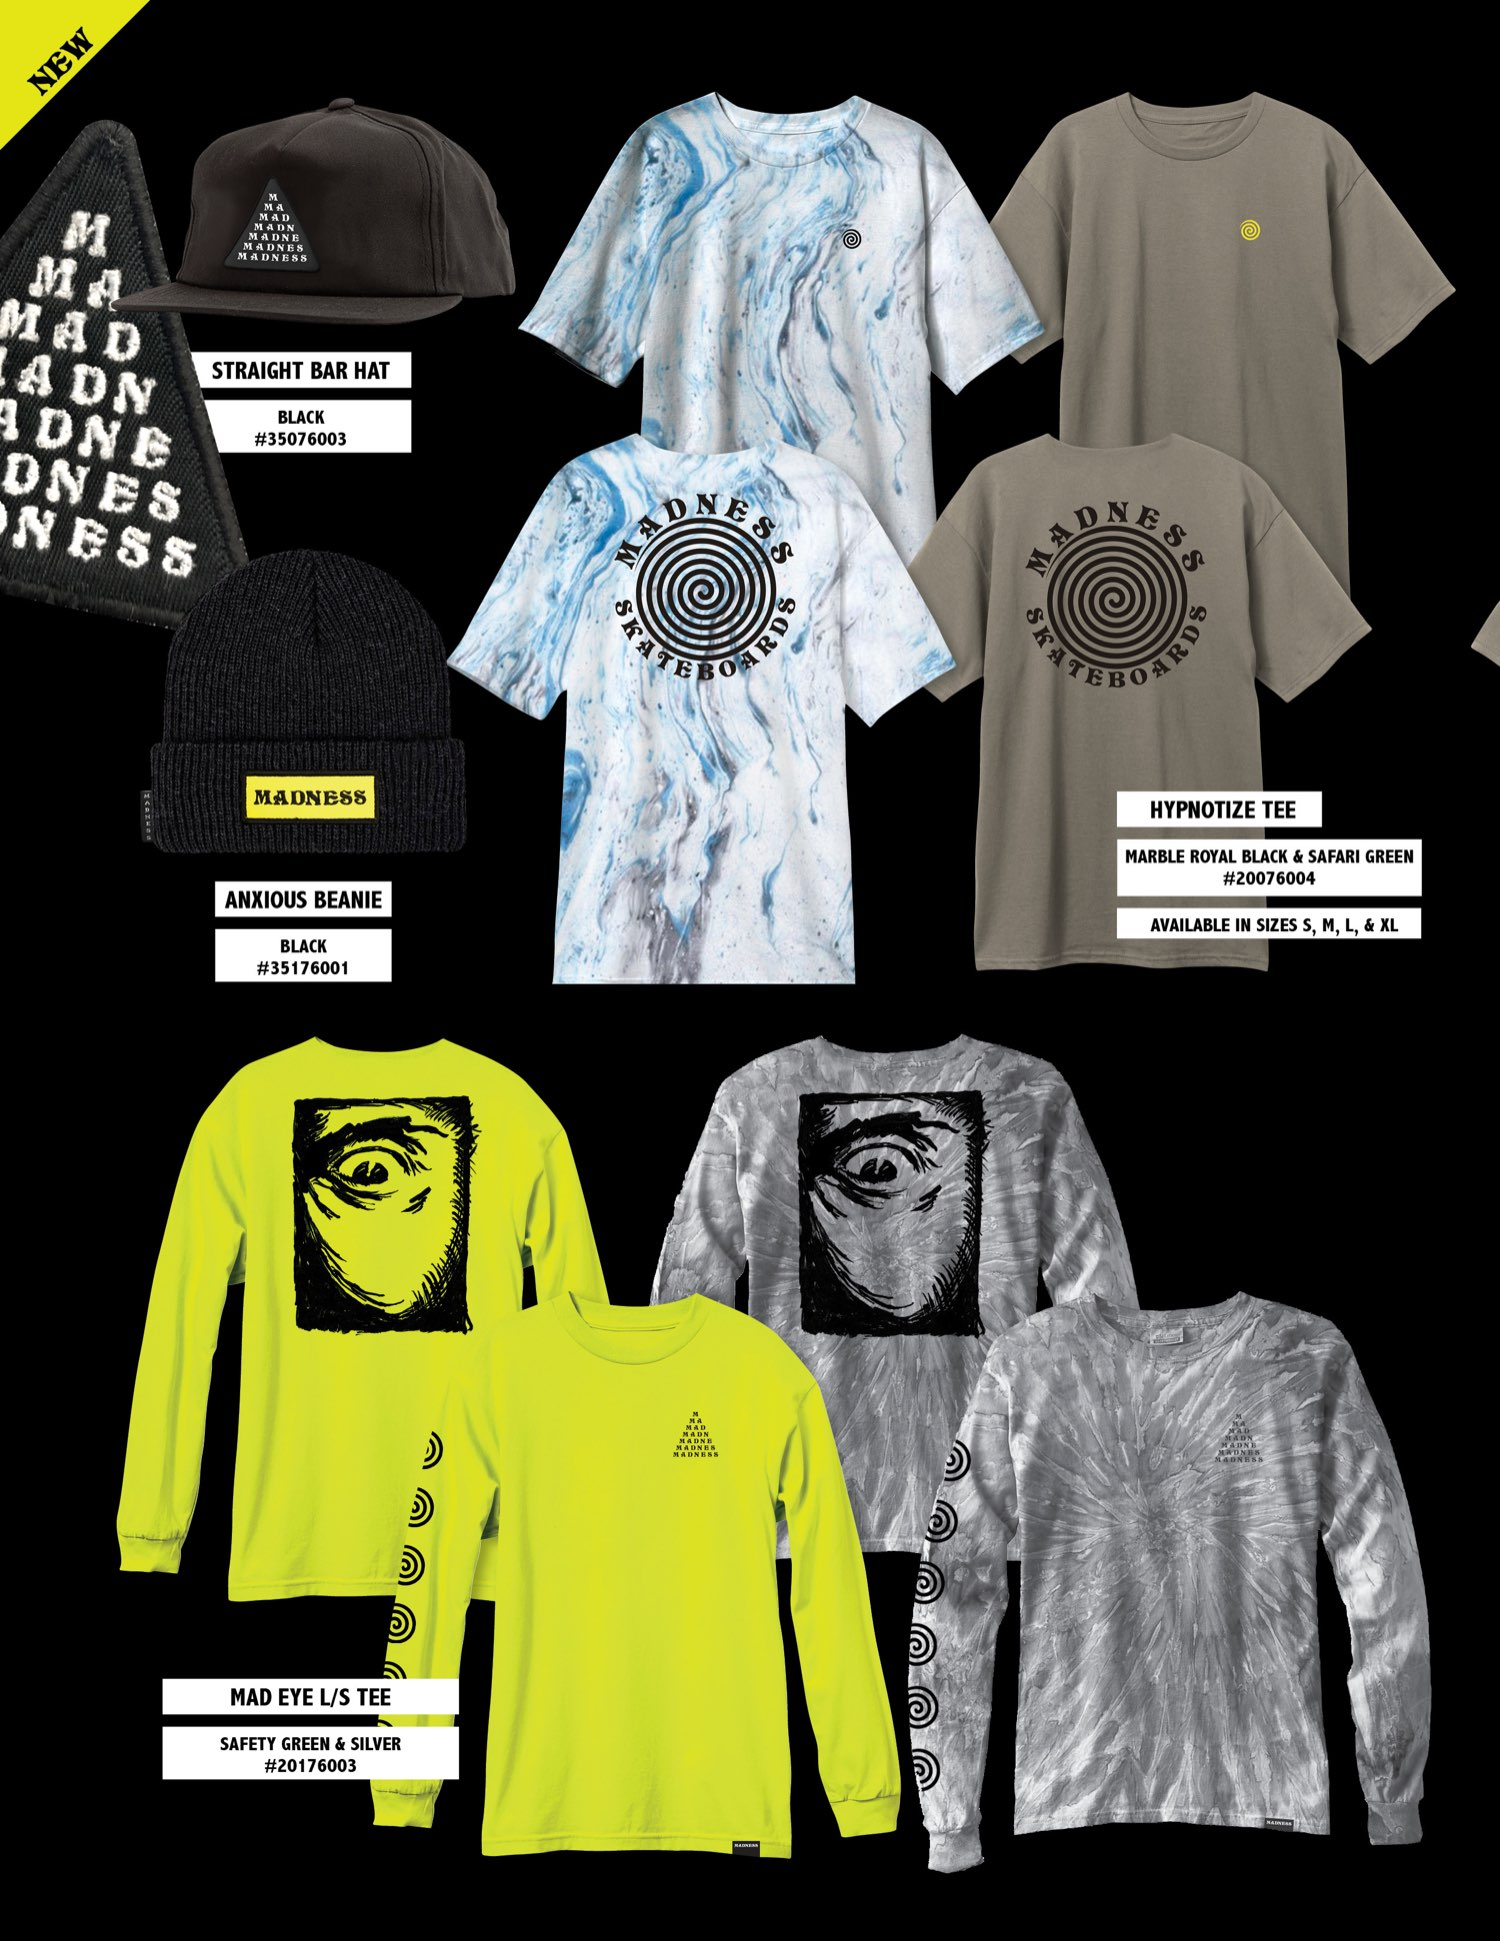 Madness_Skateboards_Summer19_Products18-18.jpg